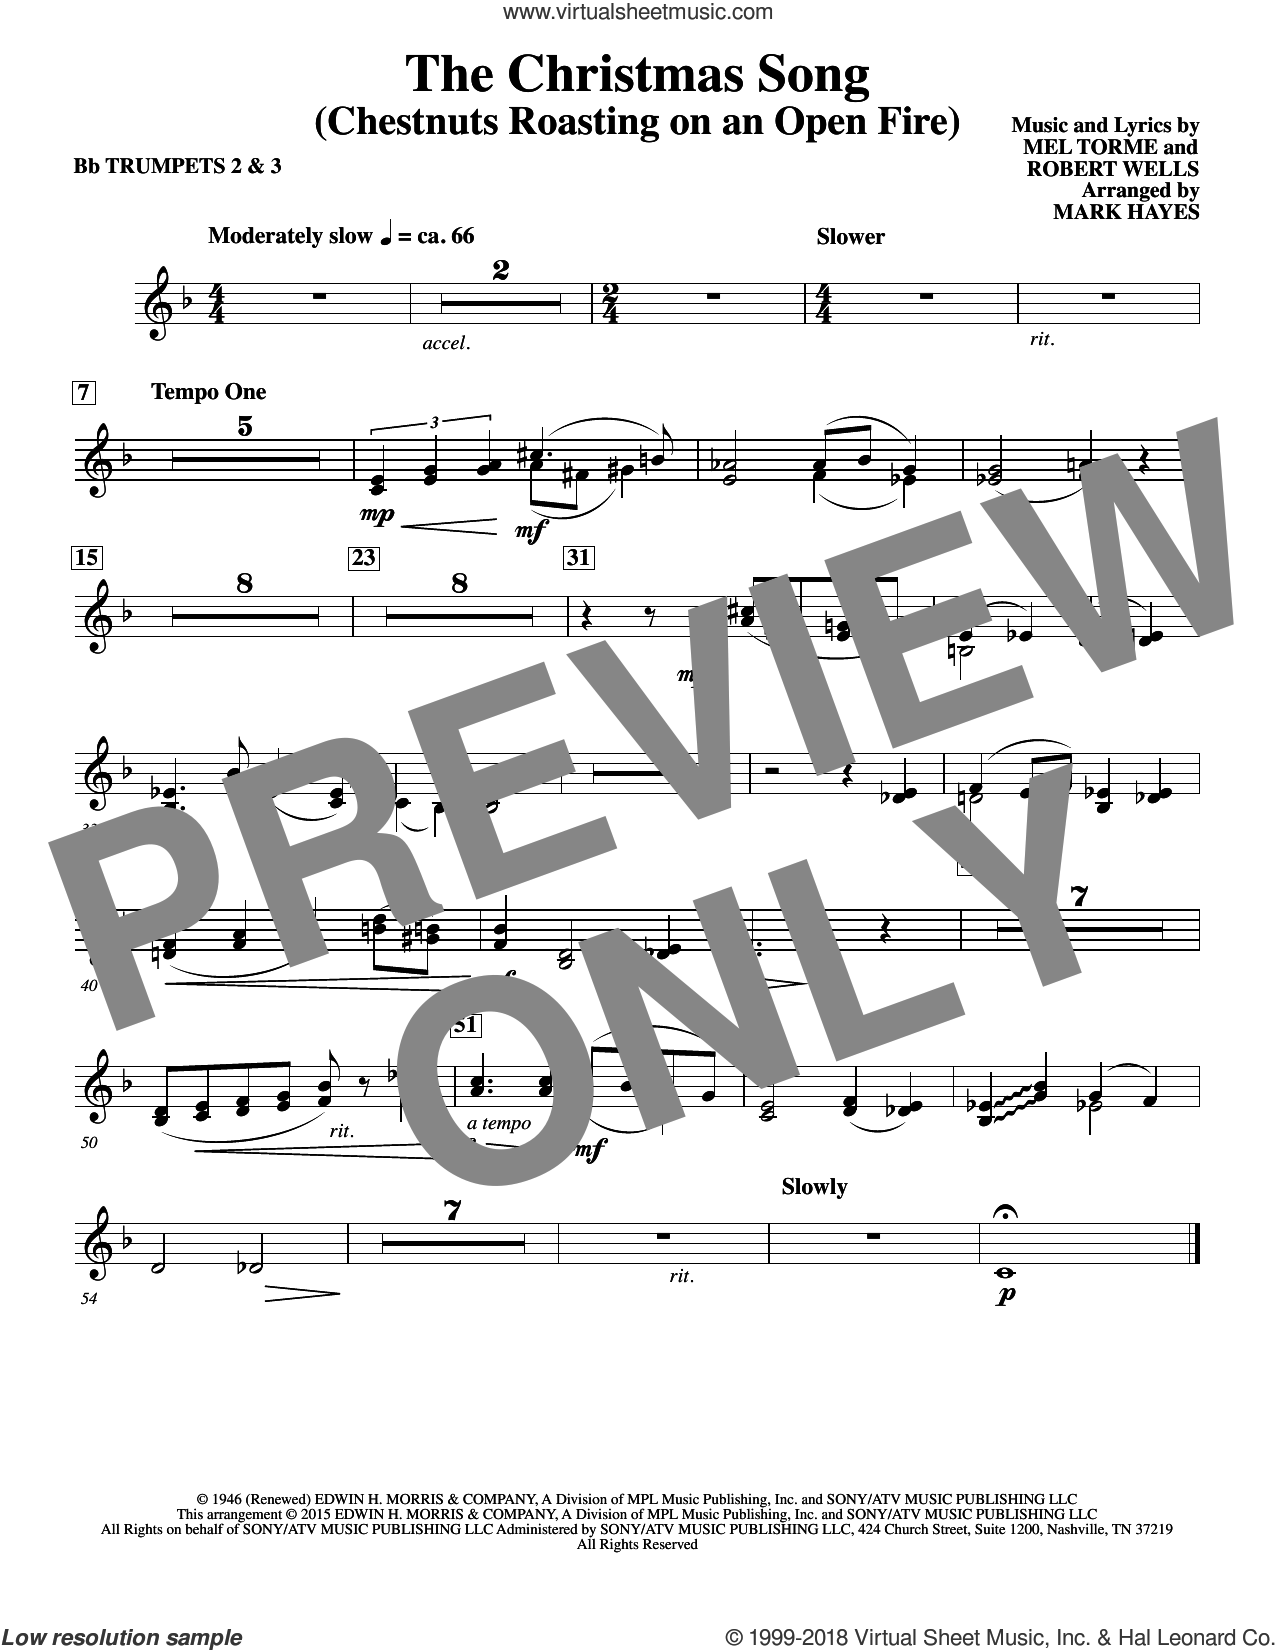 The Christmas Song (Chestnuts Roasting On An Open Fire) sheet music for orchestra/band (Bb trumpet 2,3) by Mel Torme, Mark Hayes, Clay Crosse, King Cole Trio, Nat Cole with N. Riddle Orch., Mel Torme and Robert Wells, intermediate skill level